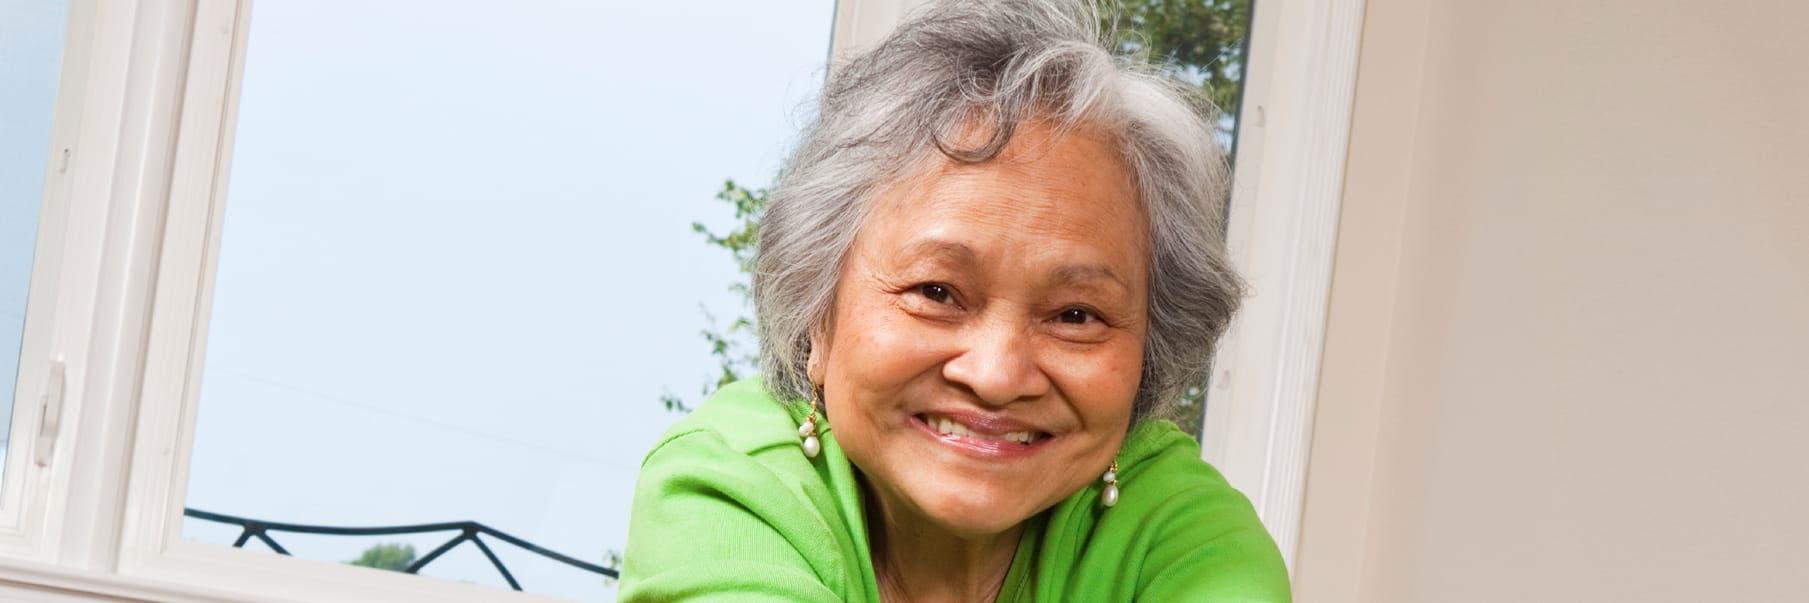 smiling older woman in a green shirt